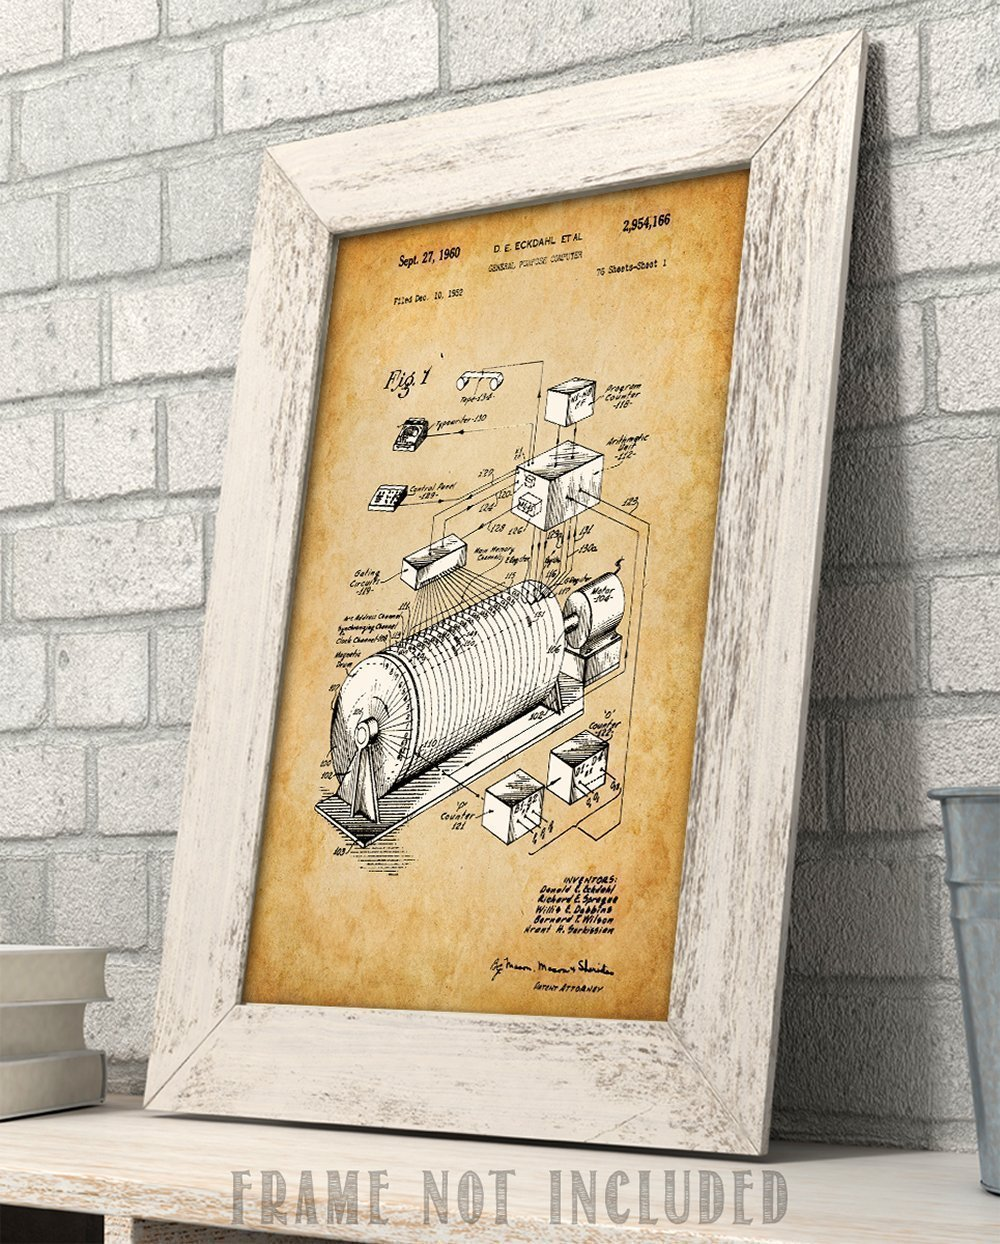 Eckdahl Computer 1960 Patent - 11x14 Unframed Patent Print - Great Gift for IT Professionals, Programmers and Geeks by Personalized Signs by Lone Star Art (Image #4)